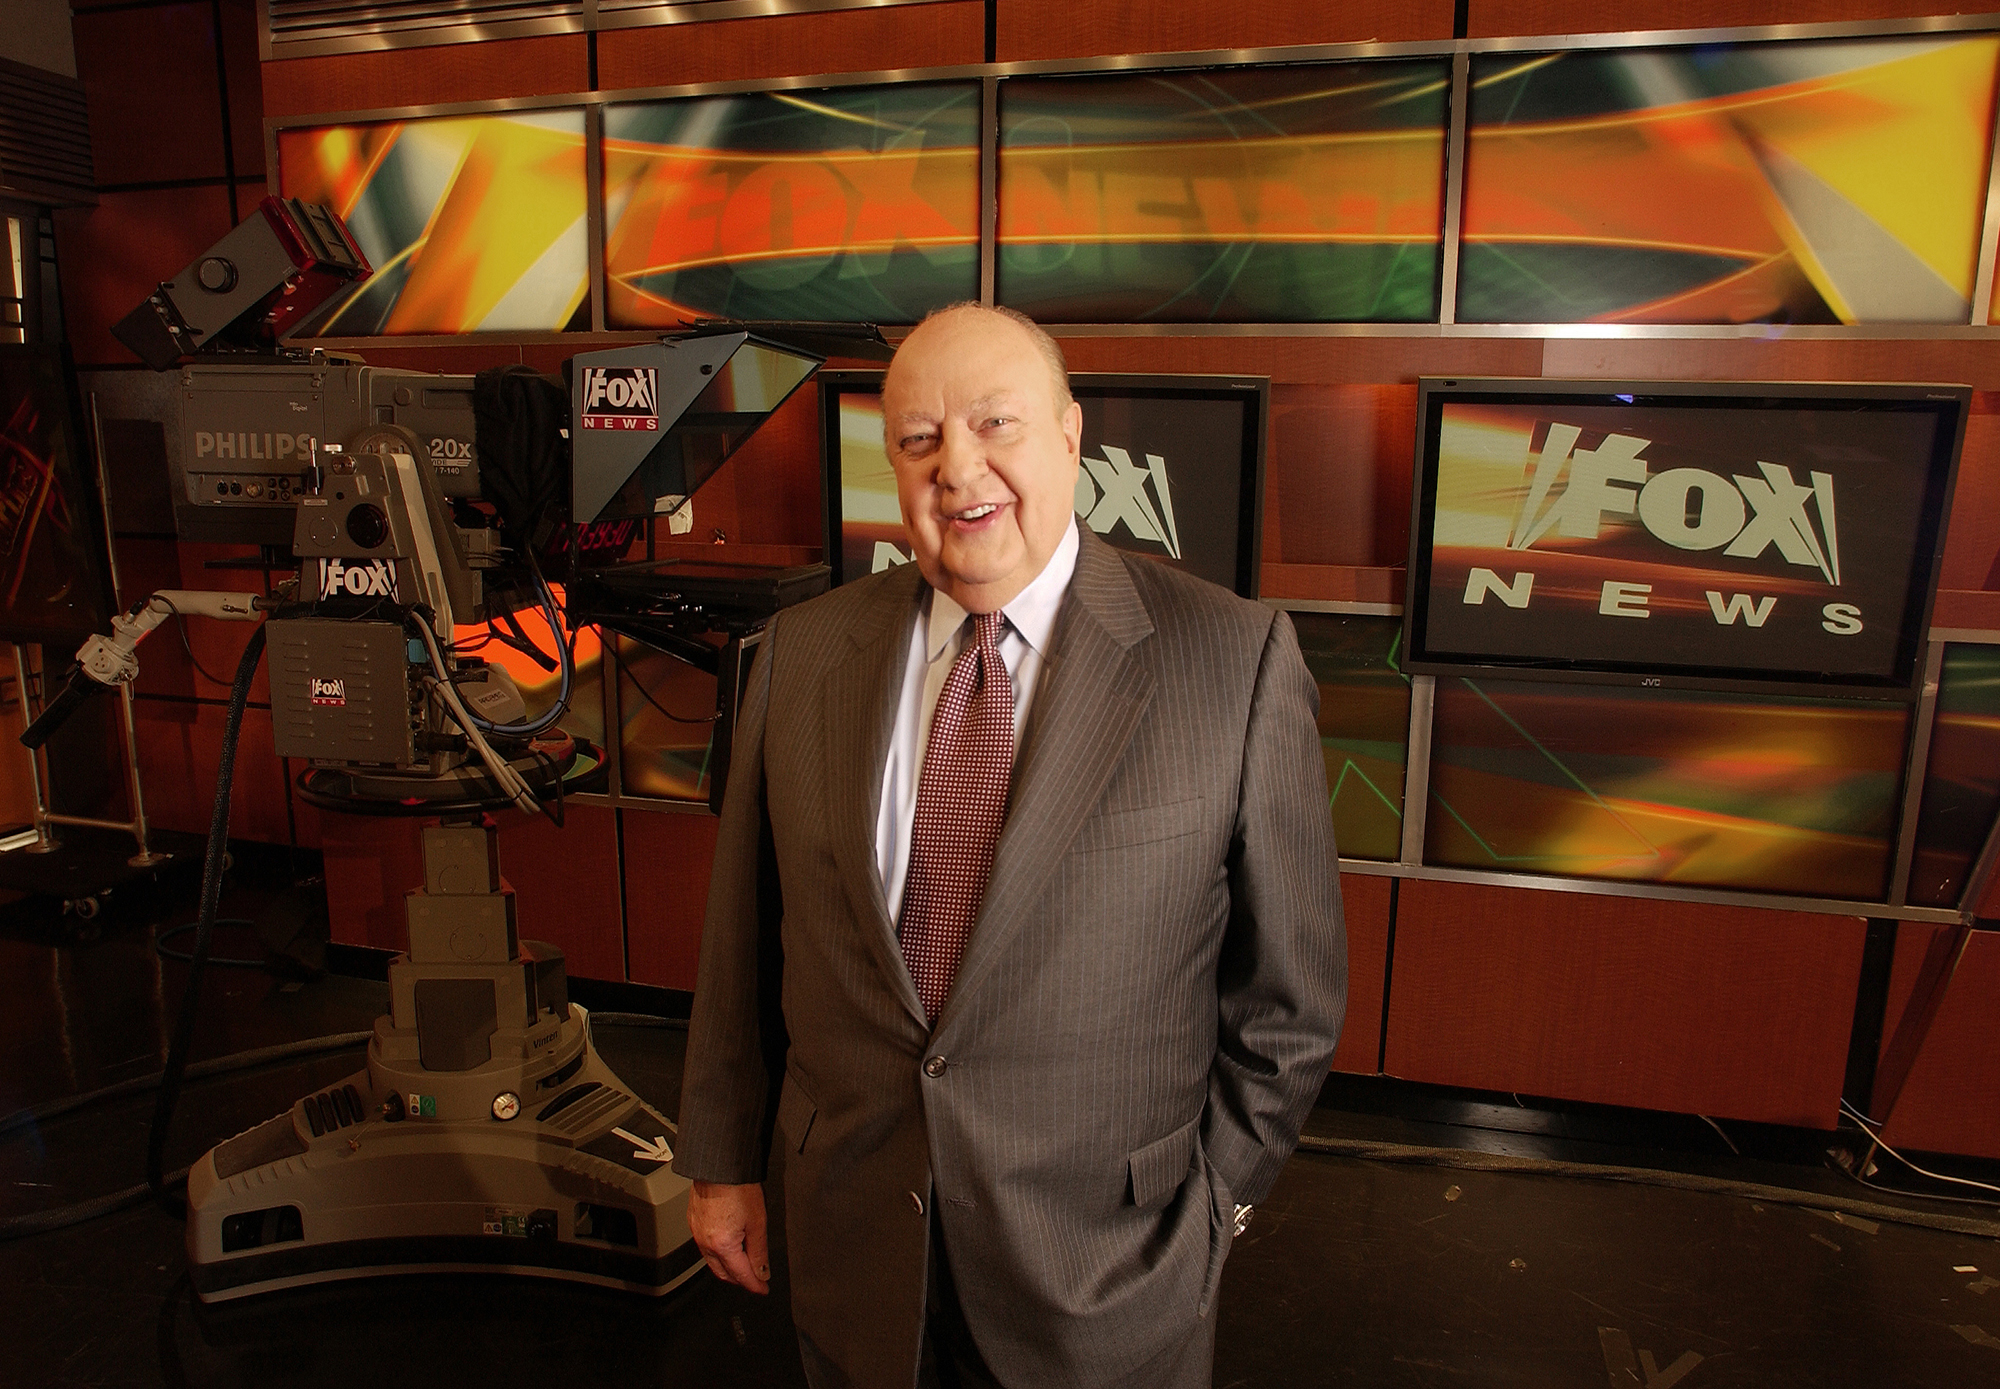 Former Fox New CEO Roger Ailes in front of a TV camera in the Fox News studio